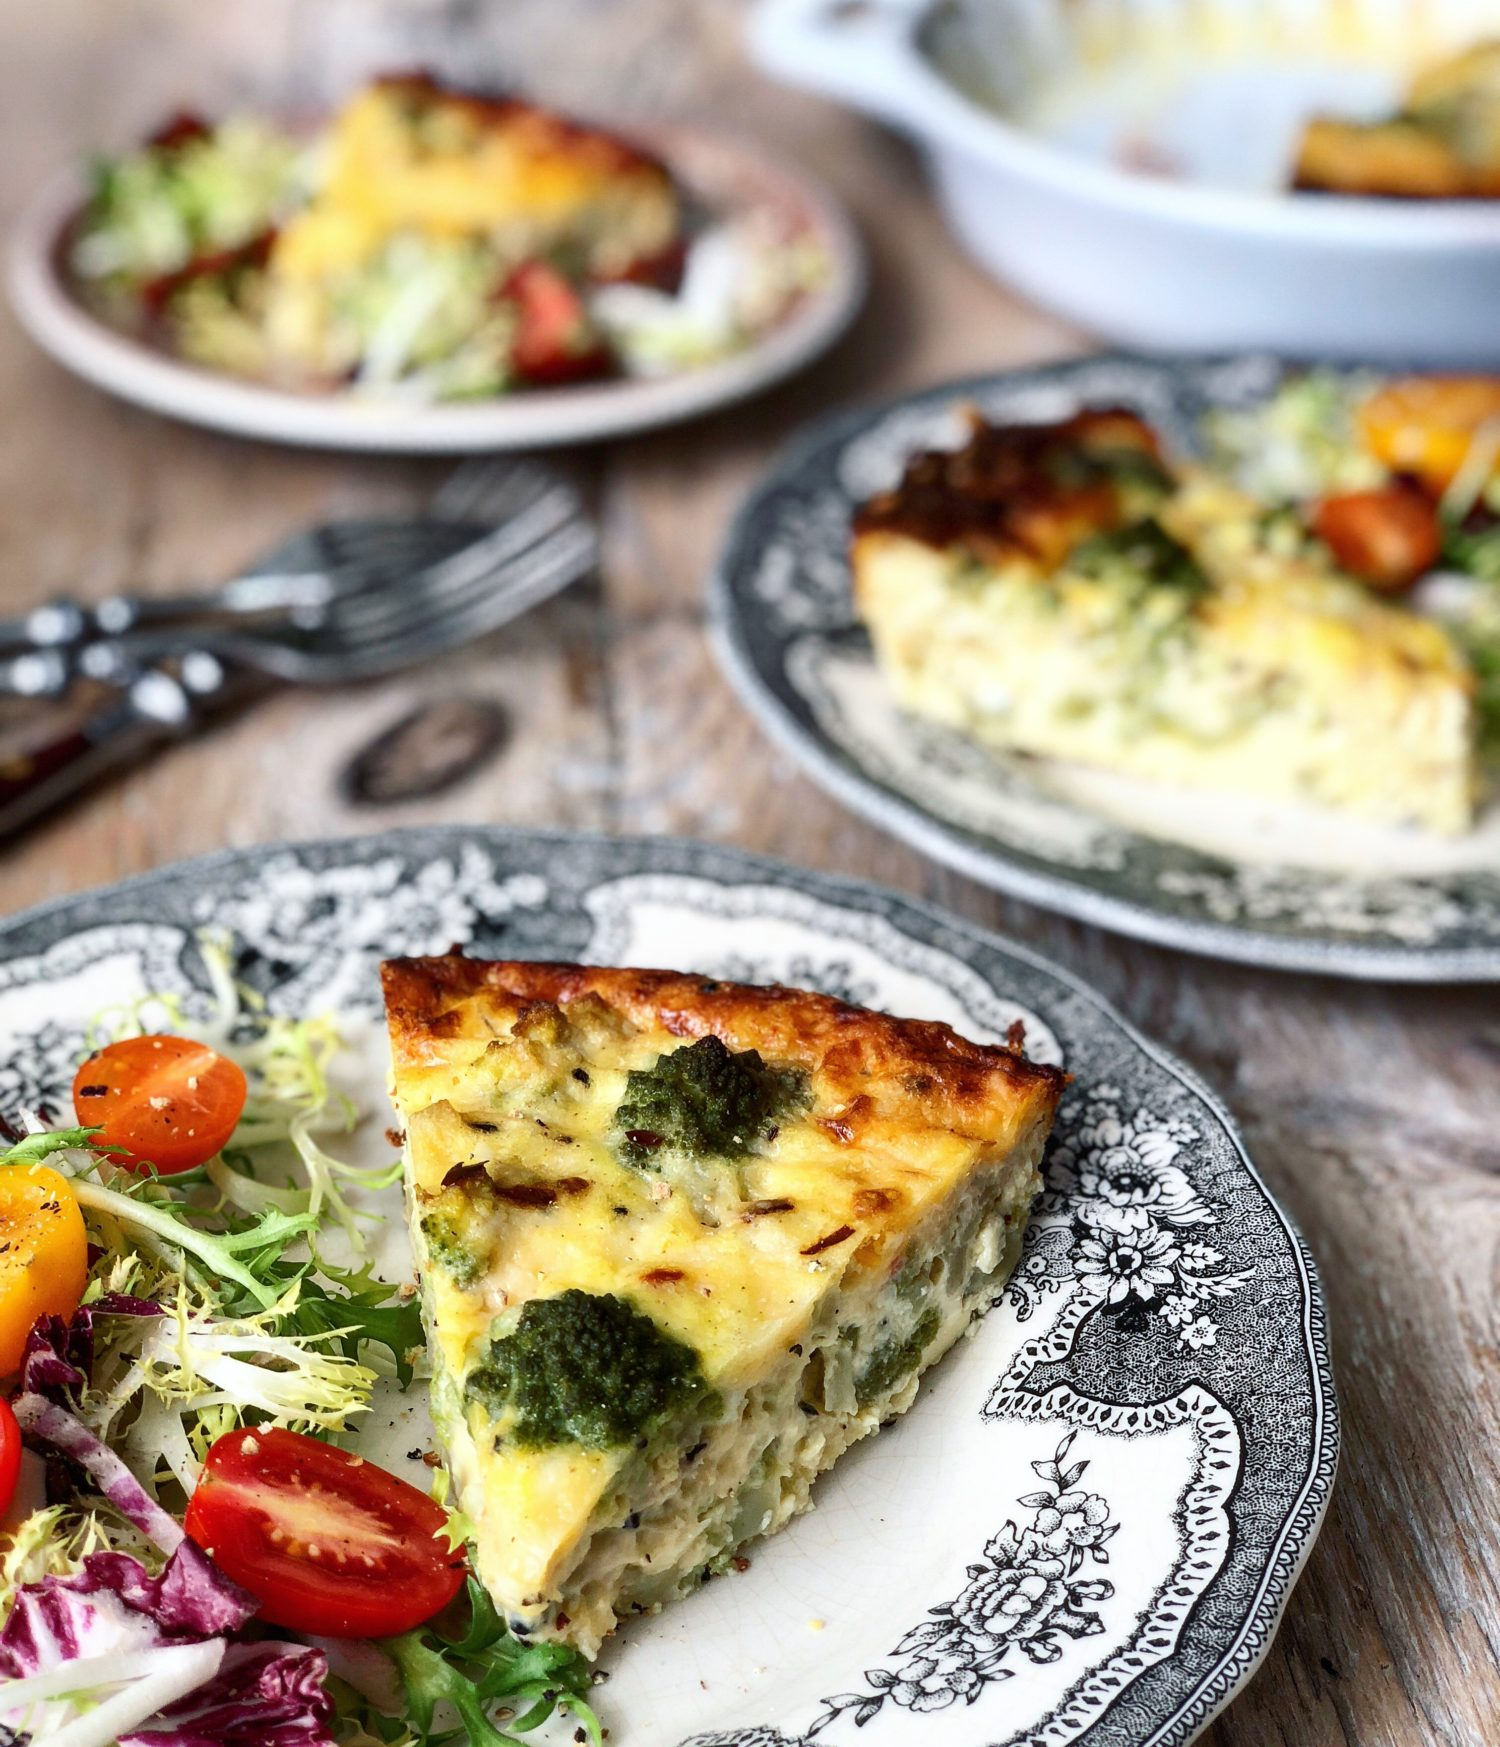 Romanesco and Cheddar Crustless Quiche